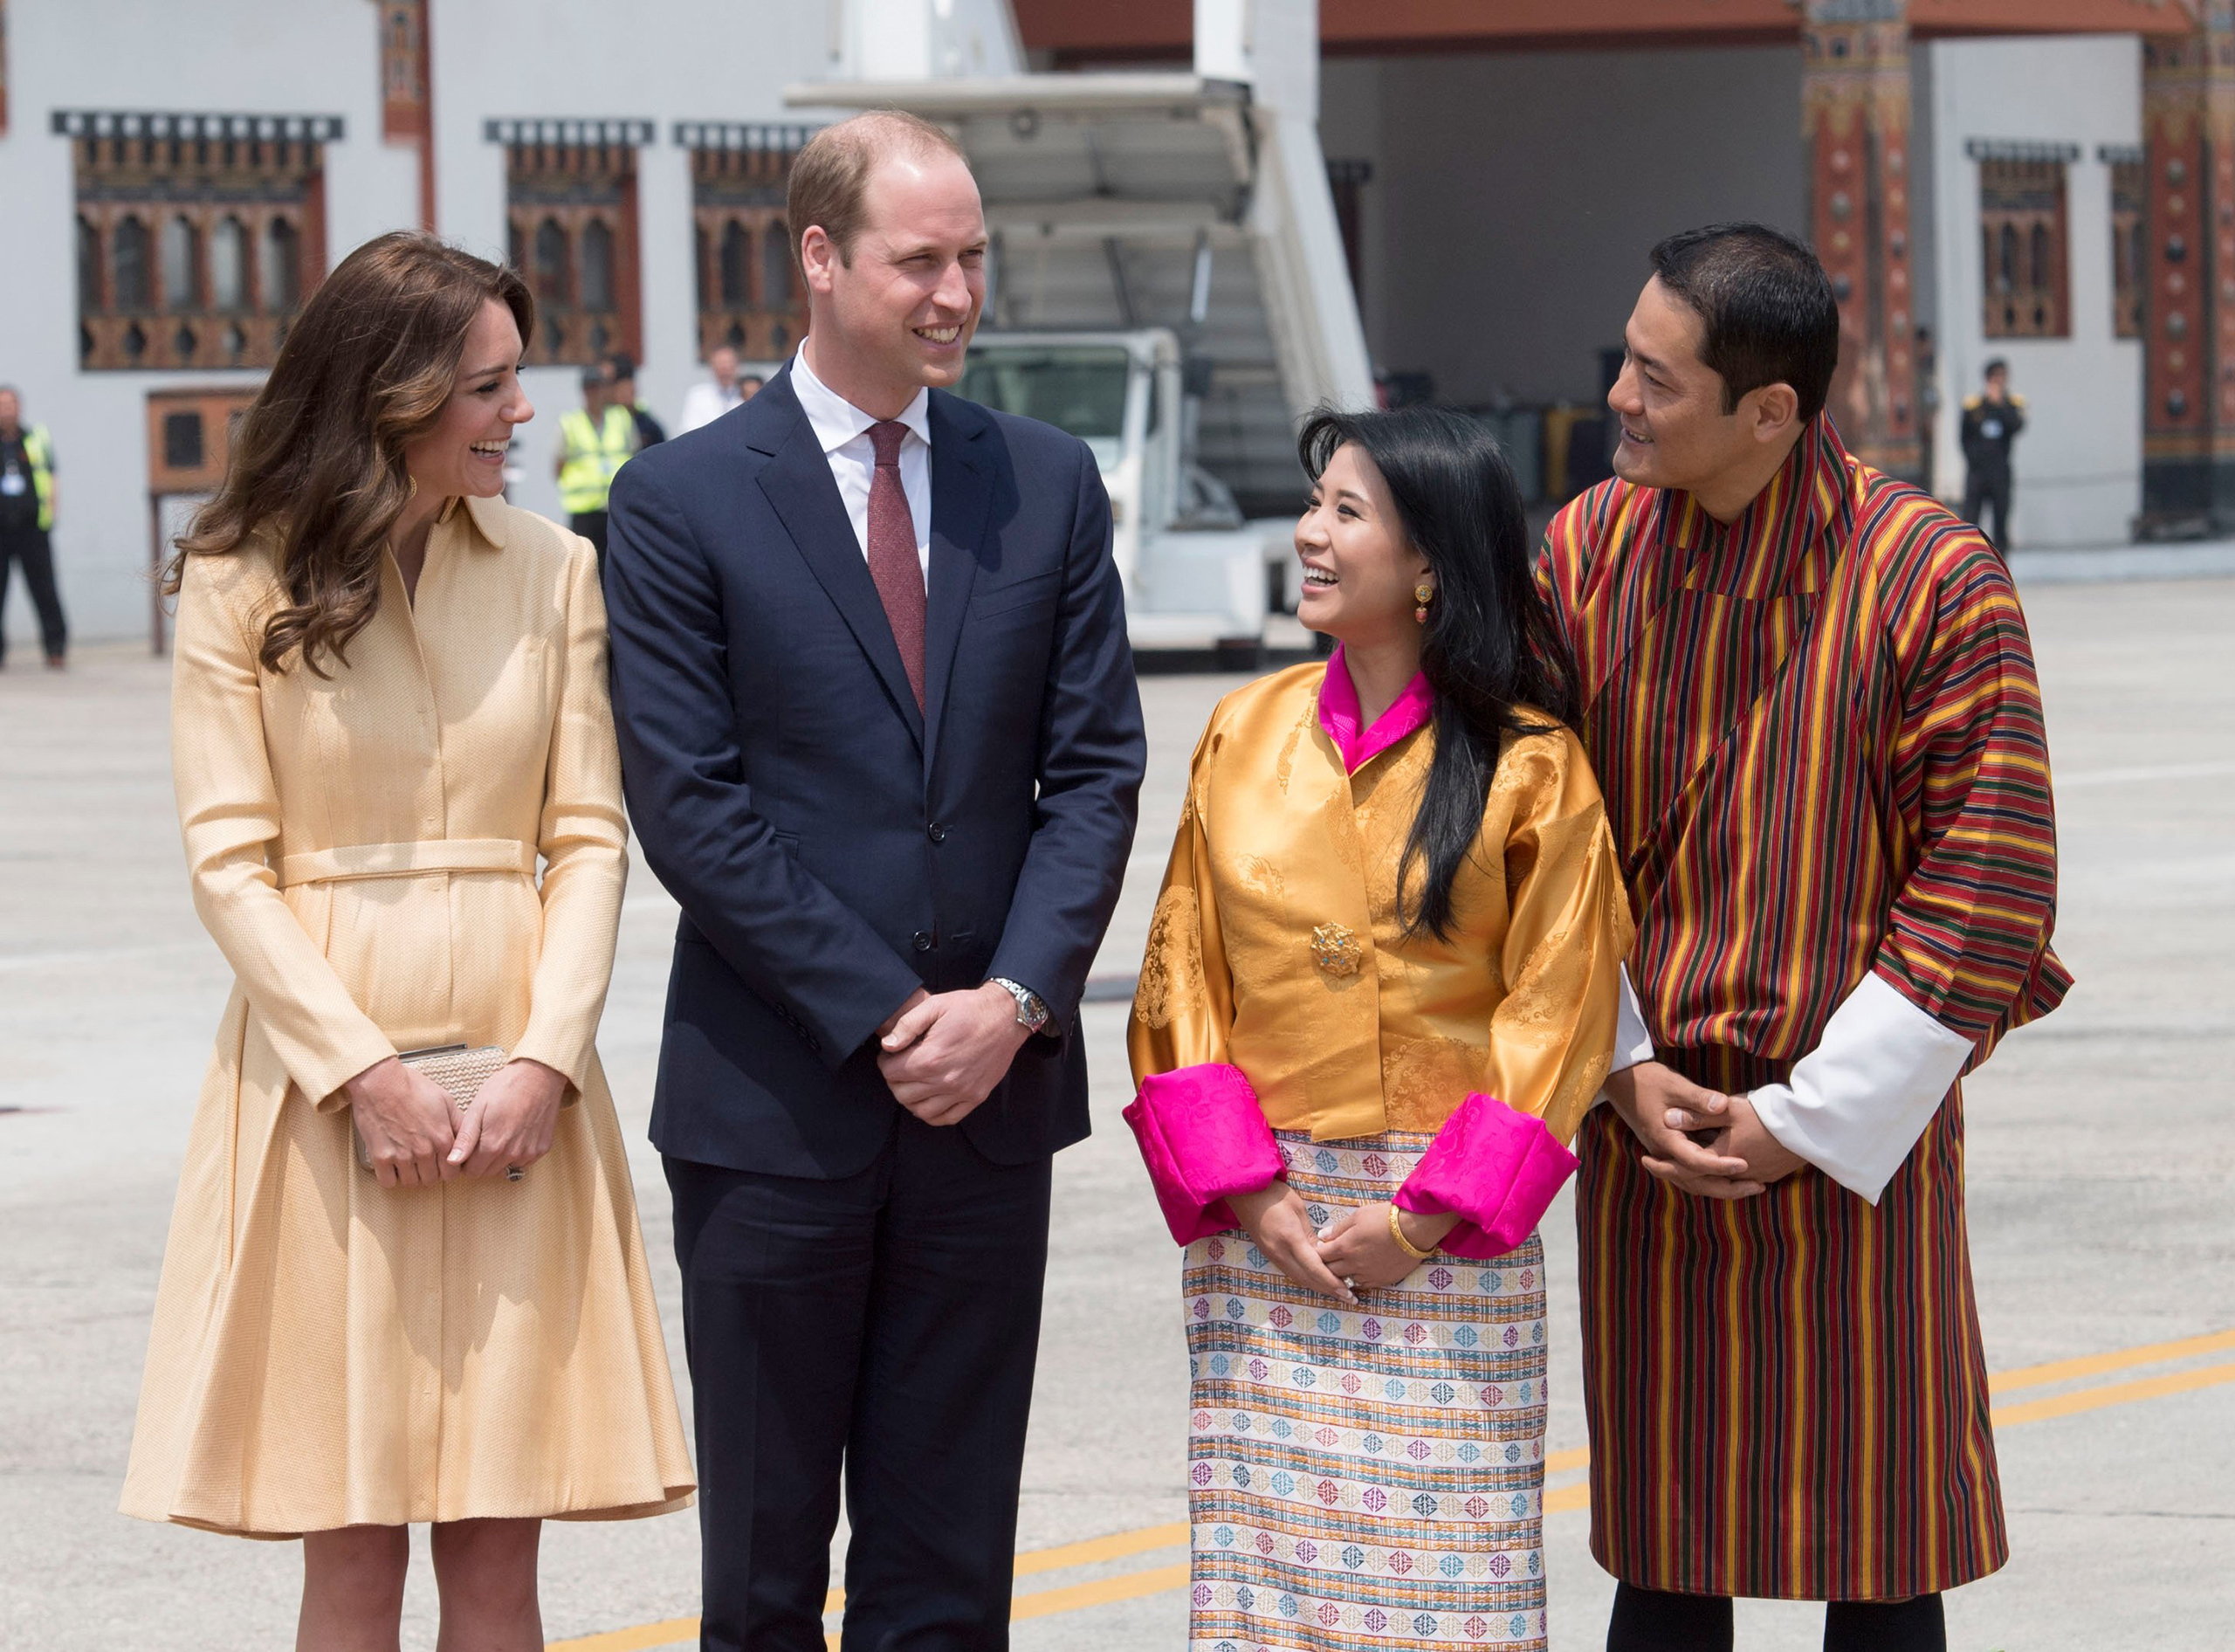 Prince William and Catherine, Duke and Duchess of Cambridge, arrive to meet King Jigme Khesar Namgyel Wangchuck and Queen Jetsun Pema at Paro International Airport in Bhutan, April 14, 2016.